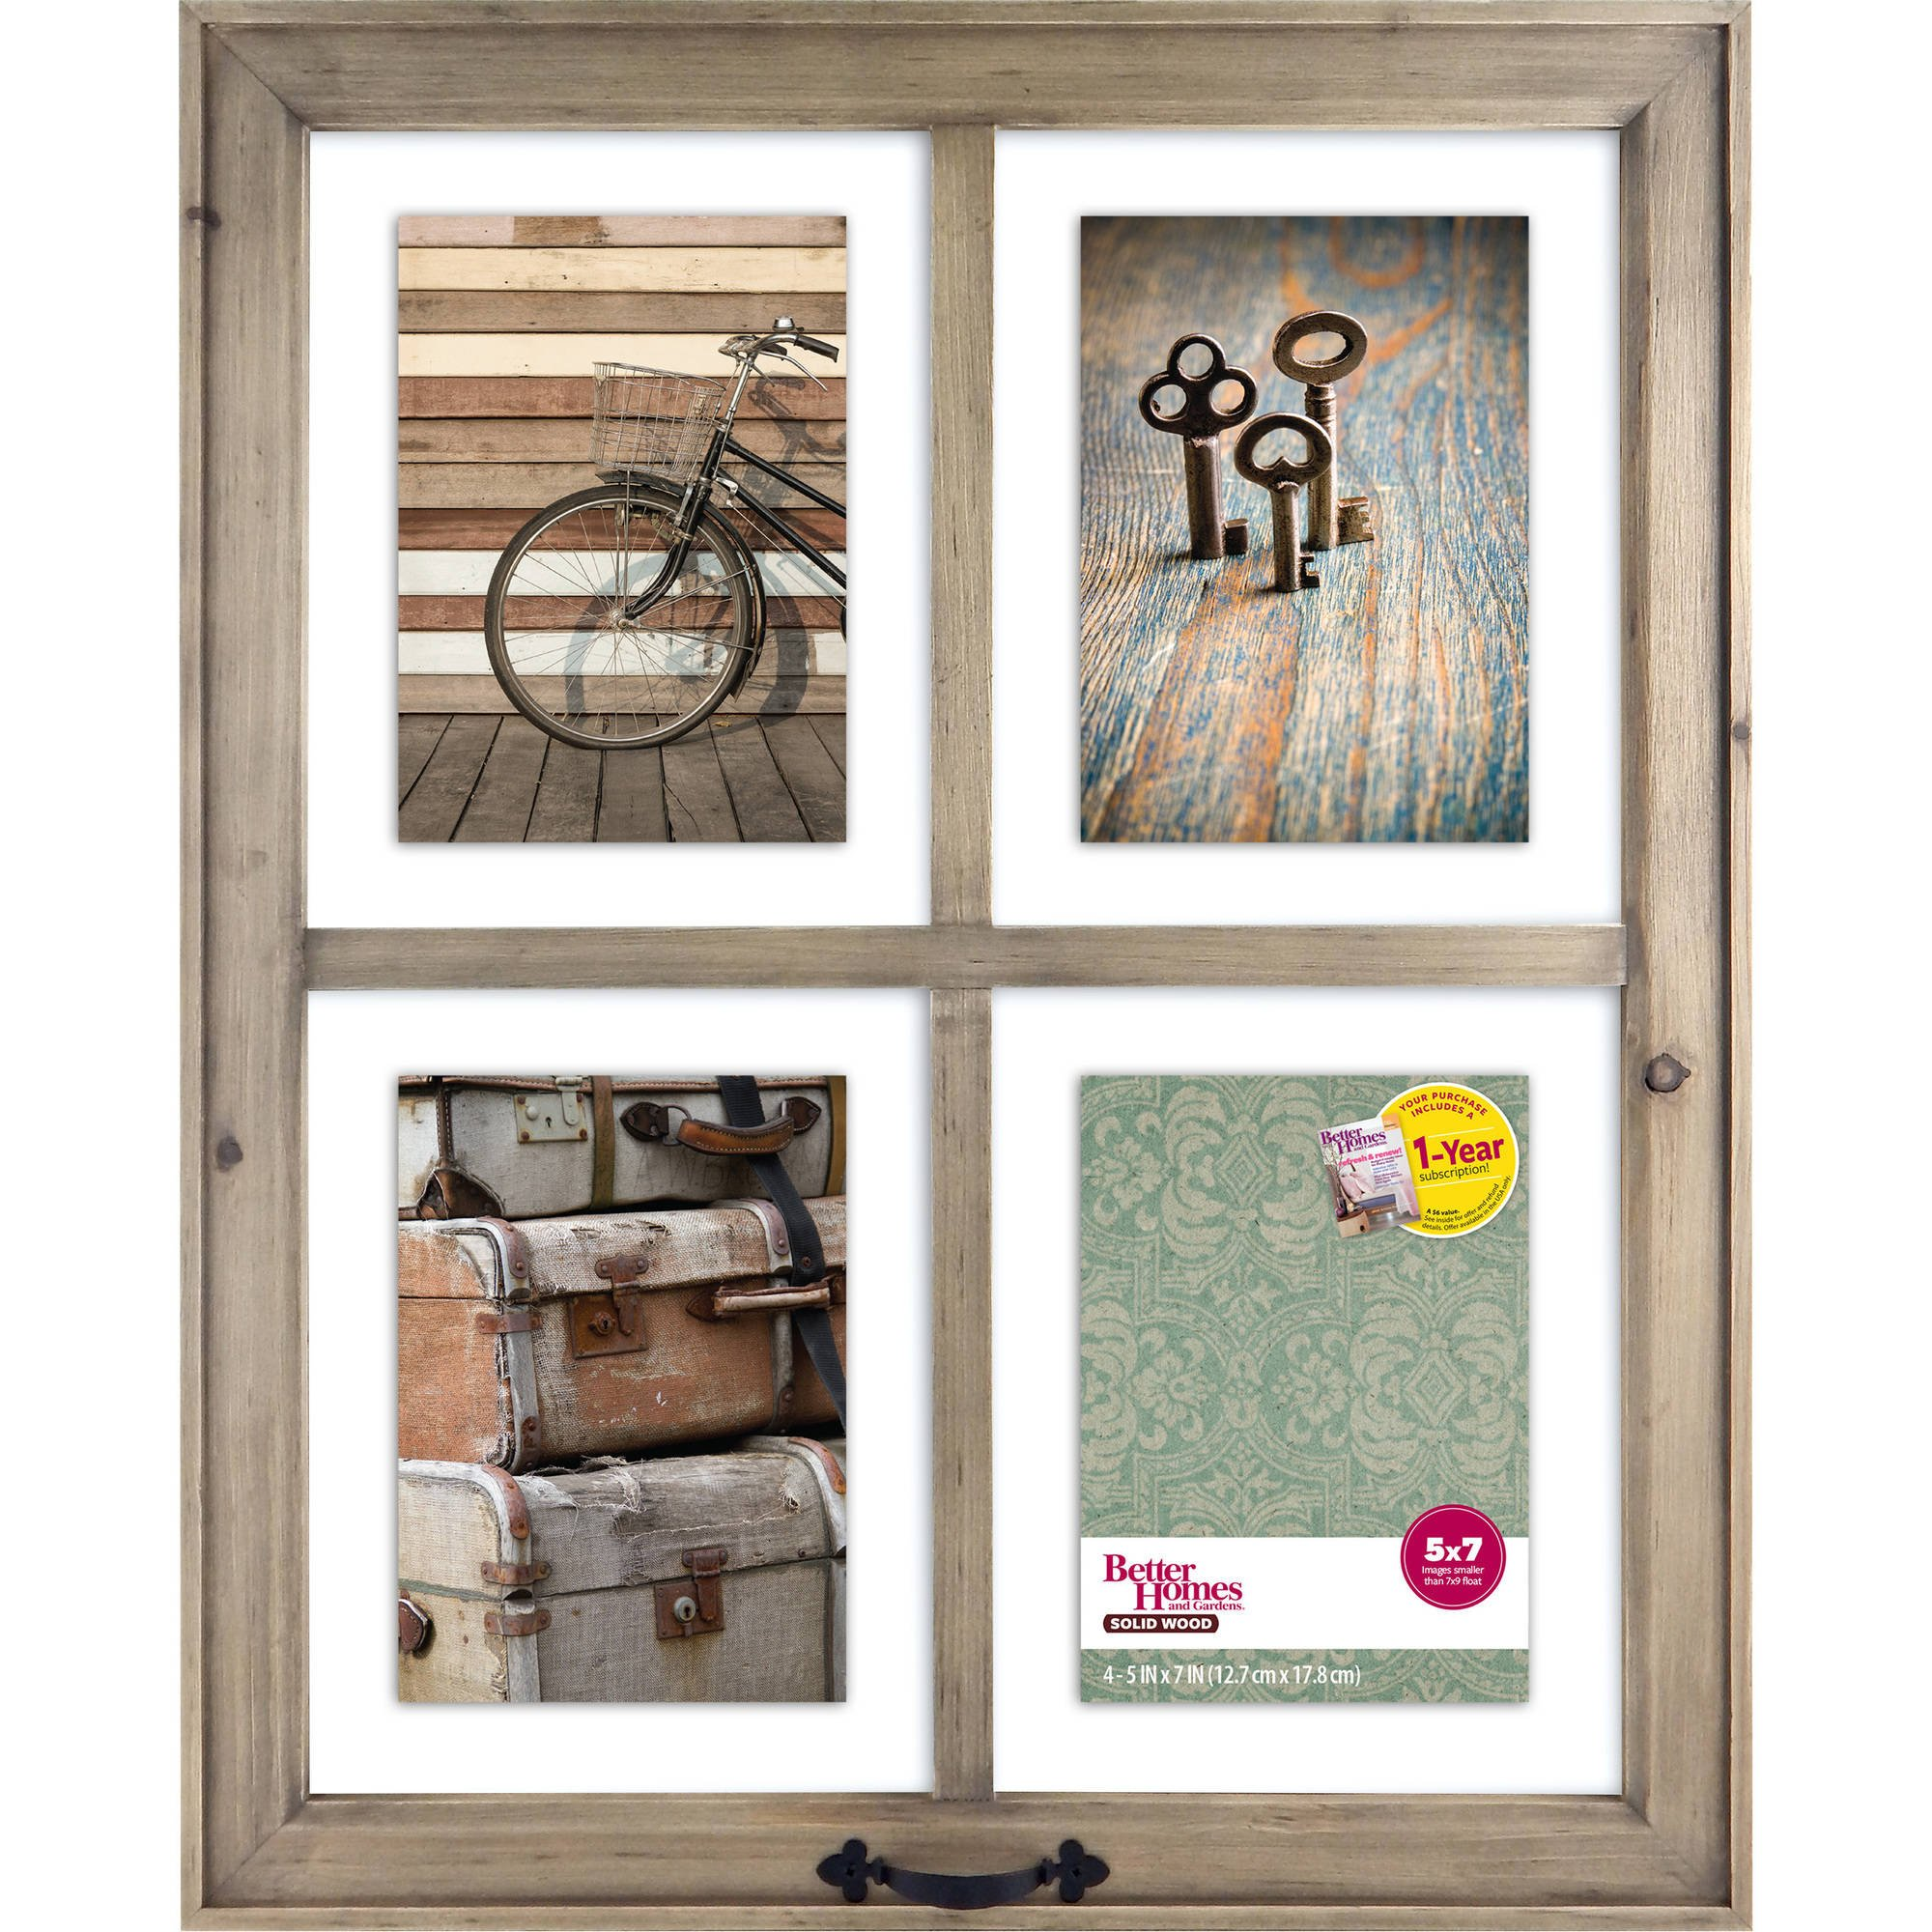 4-Opening Rustic Windowpane Collage Frame by Better Homes & Gardens*